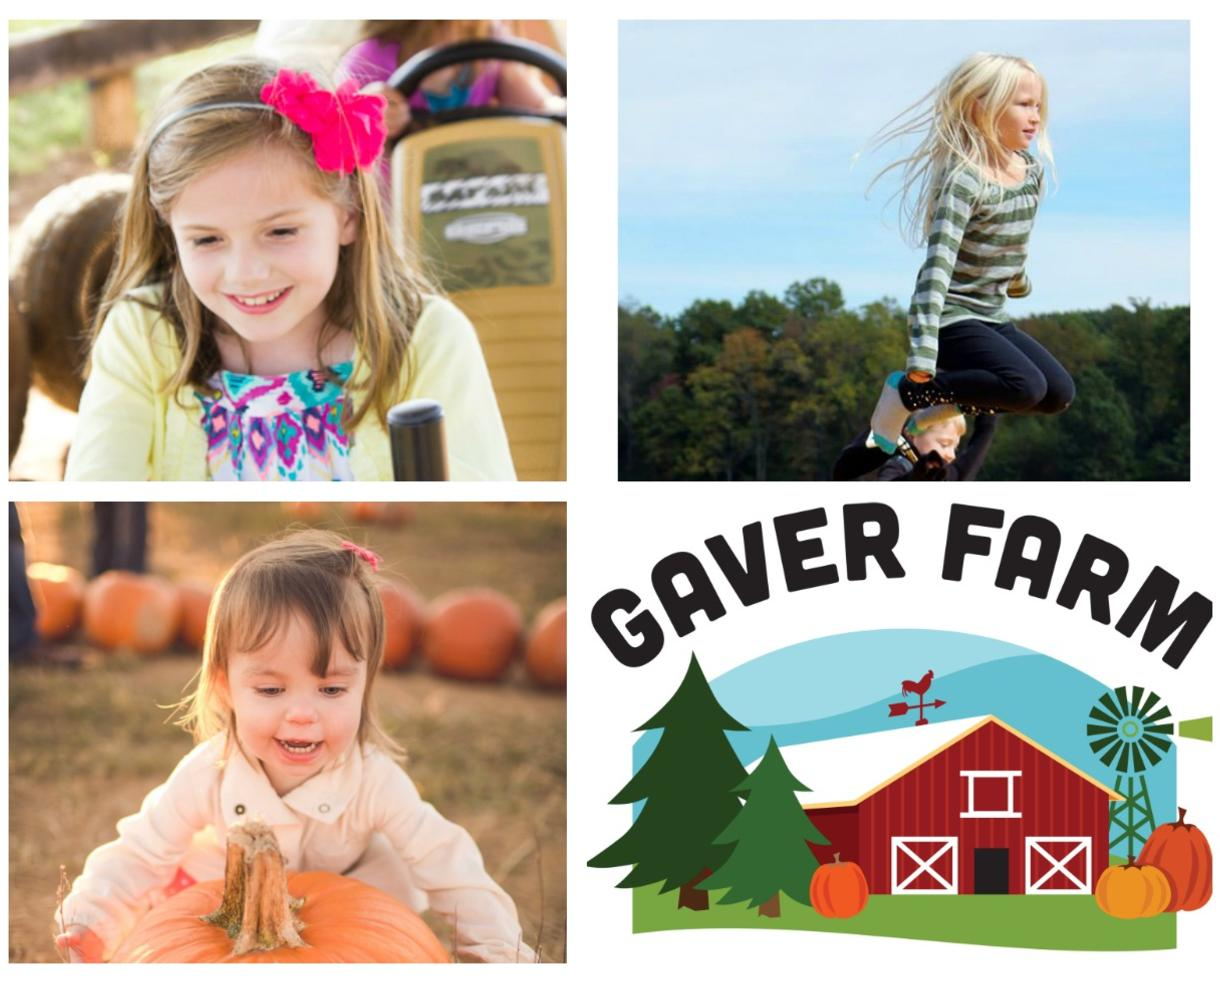 $11 for TWO Weekend Admissions to Gaver Farm in Mt. Airy, MD ($22 Value - 50% Off)